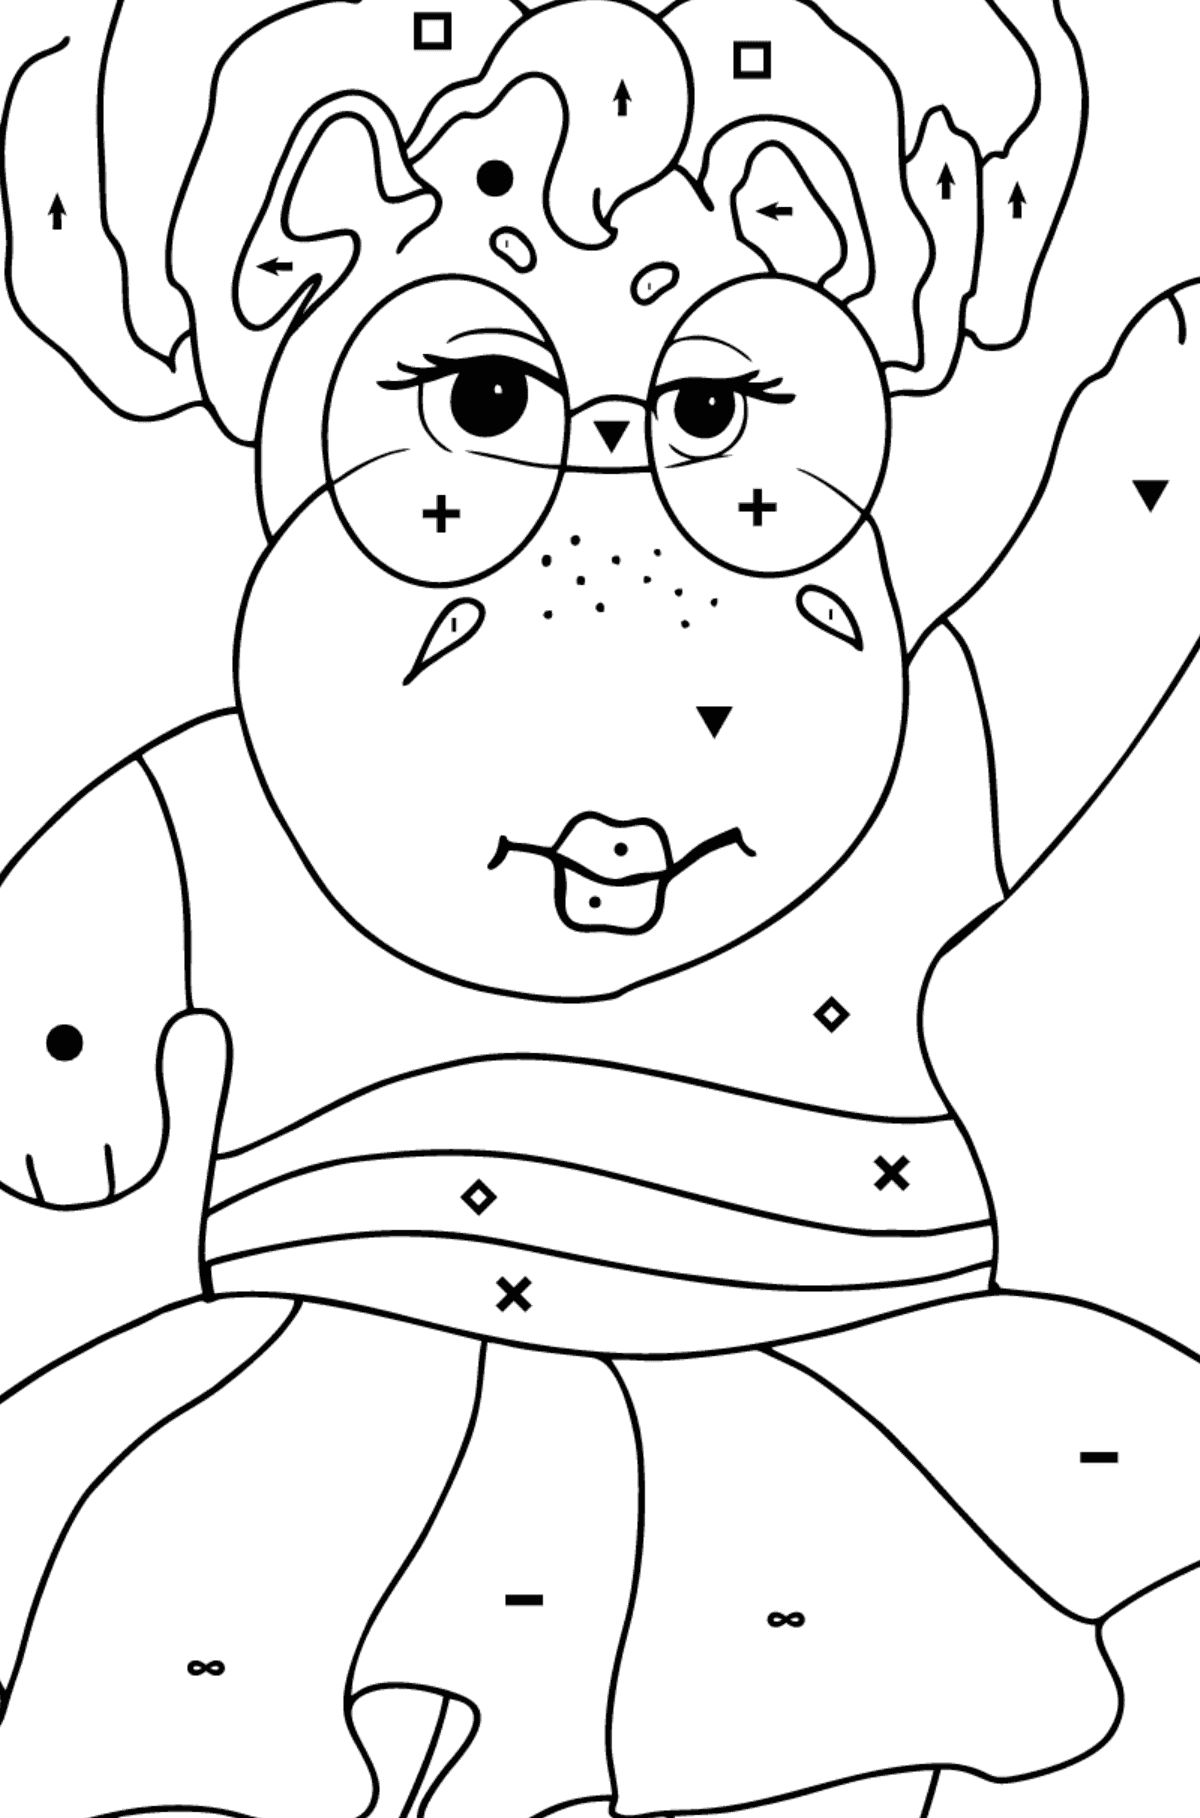 Coloring Page - A Hippo in Sunglasses for Children  - Color by Special Symbols